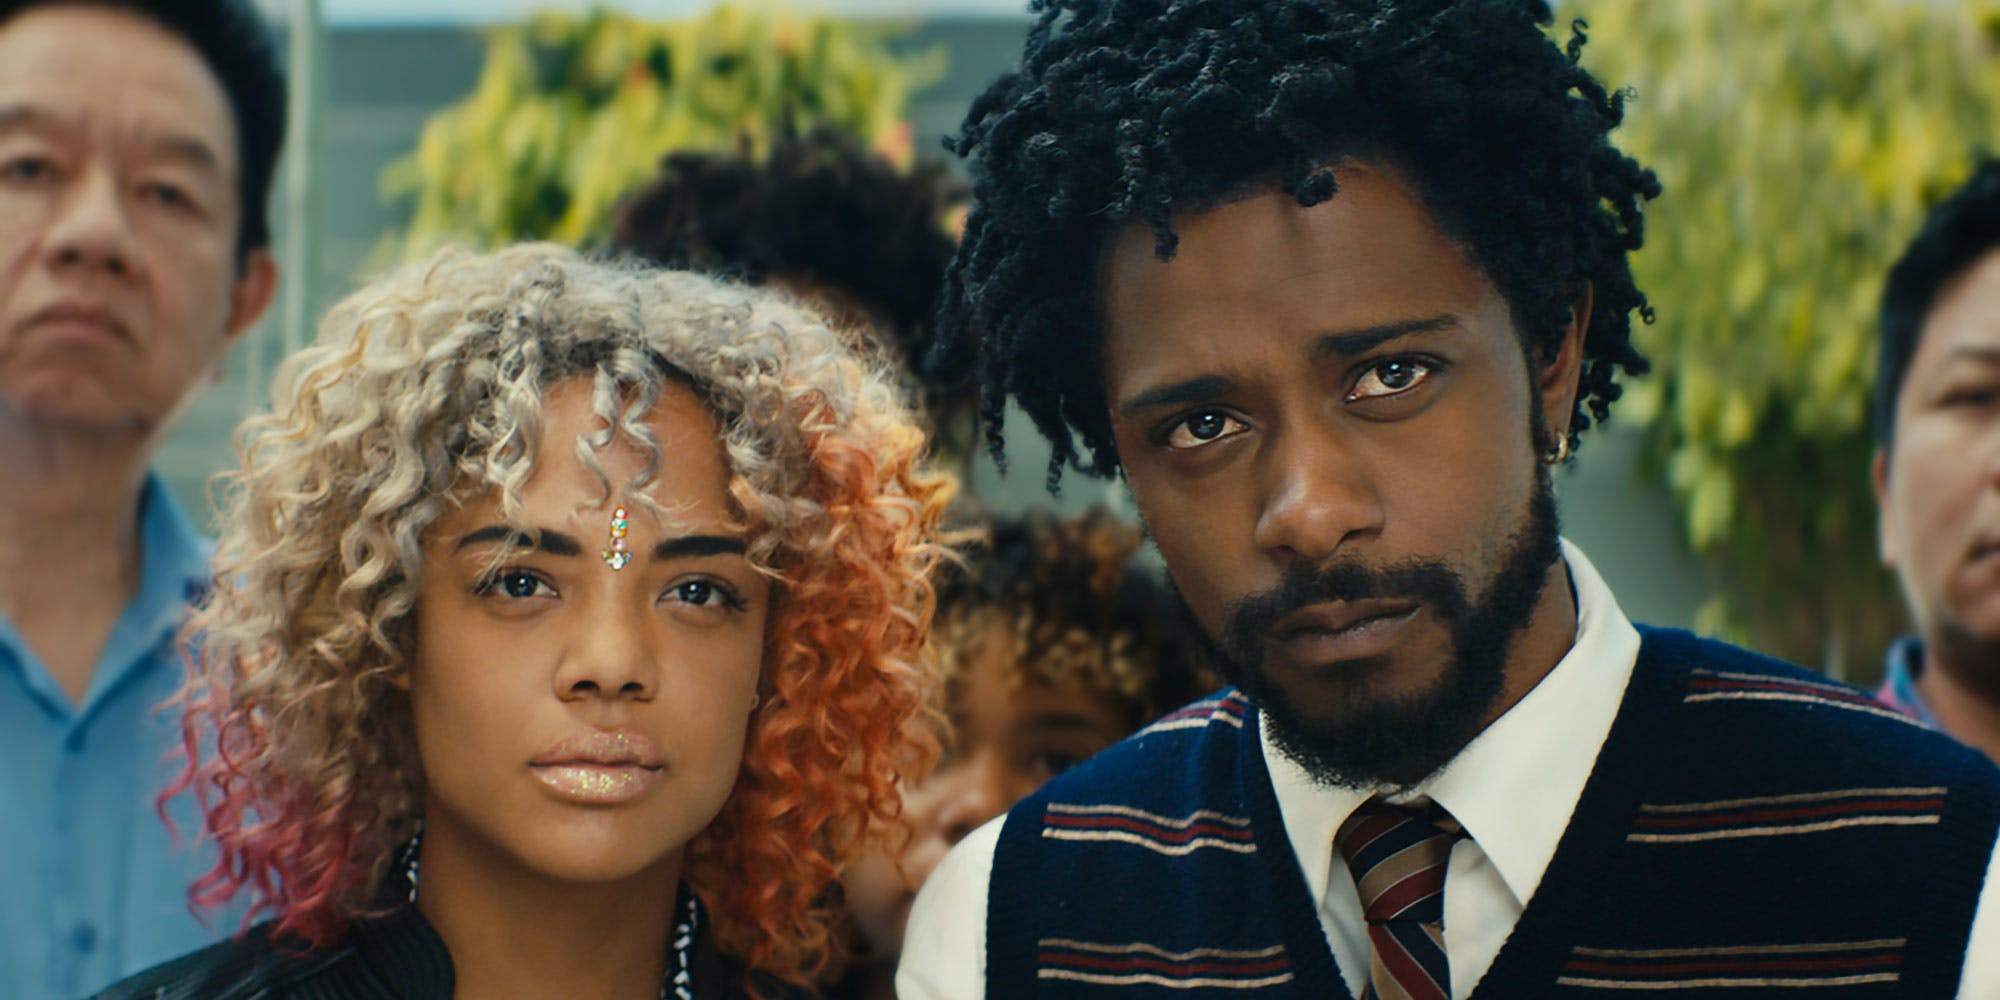 """You Say You Want a Revolution? The Anti-Capitalist Film """"Sorry to Bother You"""" Shows the Way"""